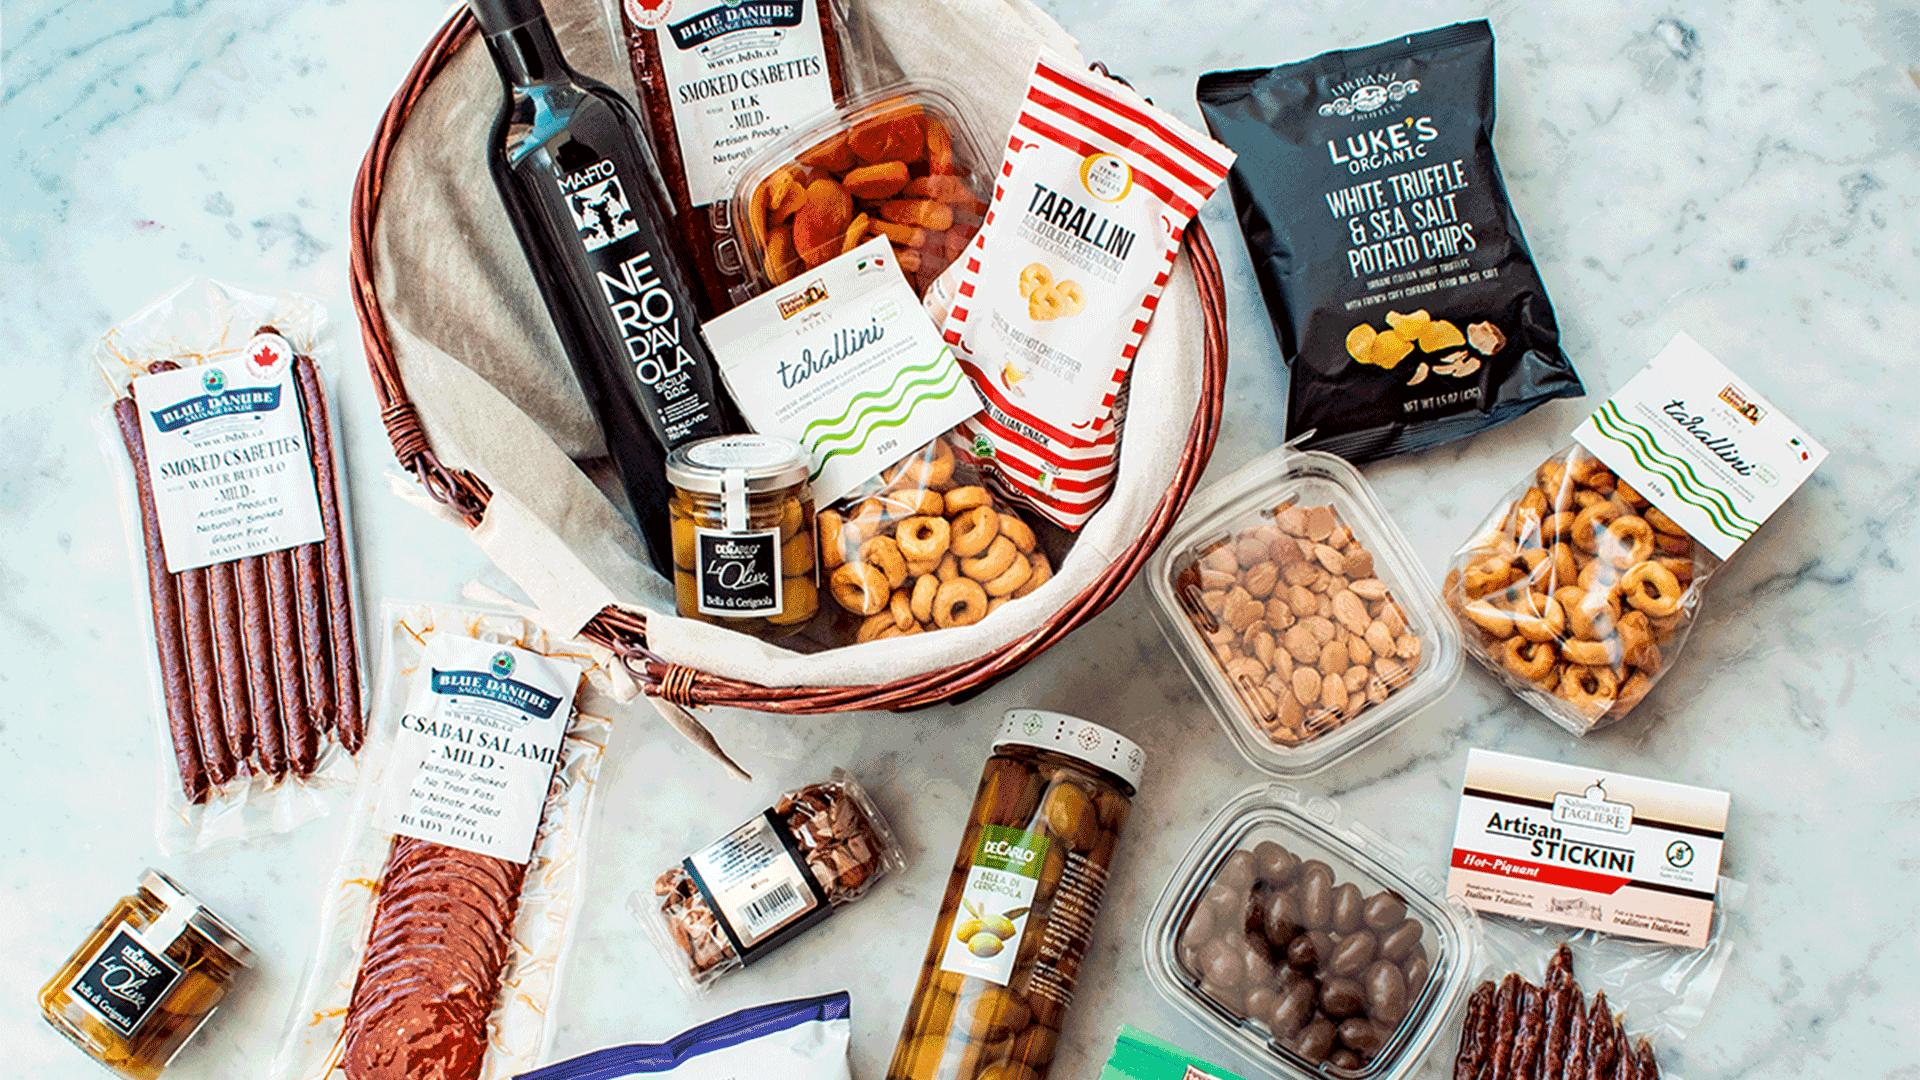 Must-try picnic baskets from Toronto restaurants   Eataly's curated picnic baskets